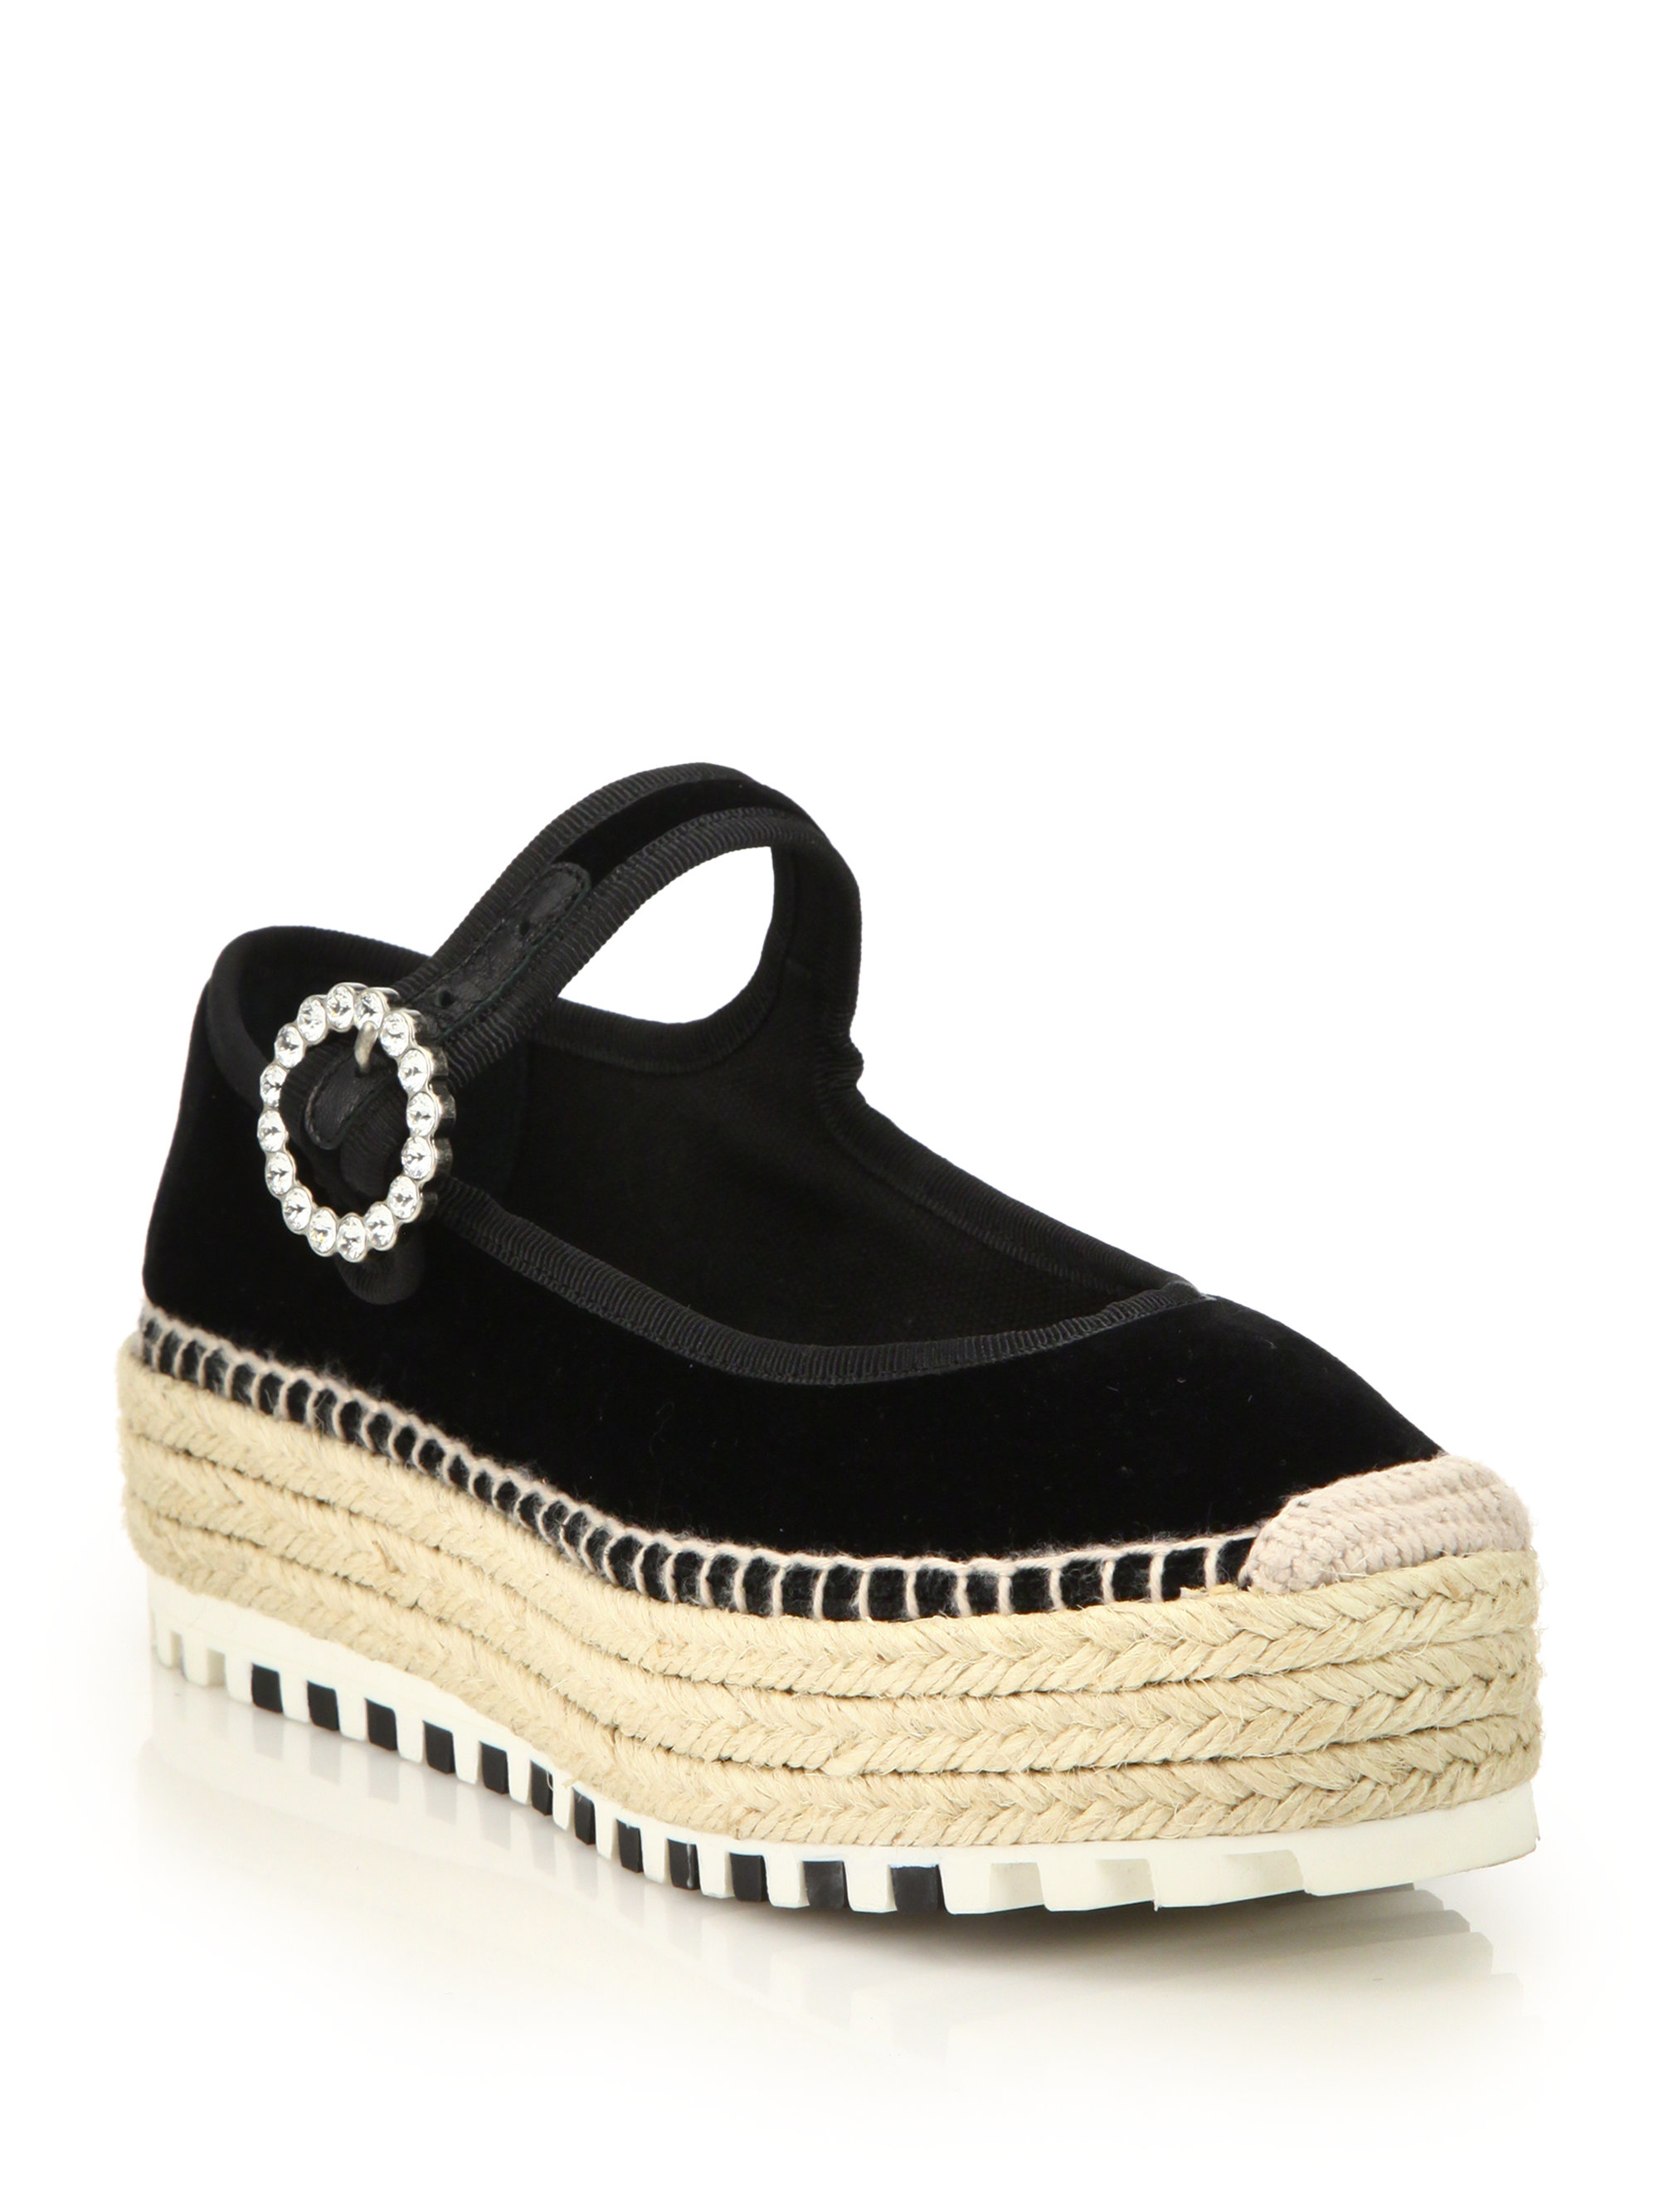 Marc by marc jacobs Suzi Velvet Espadrille Mary Janes in ...